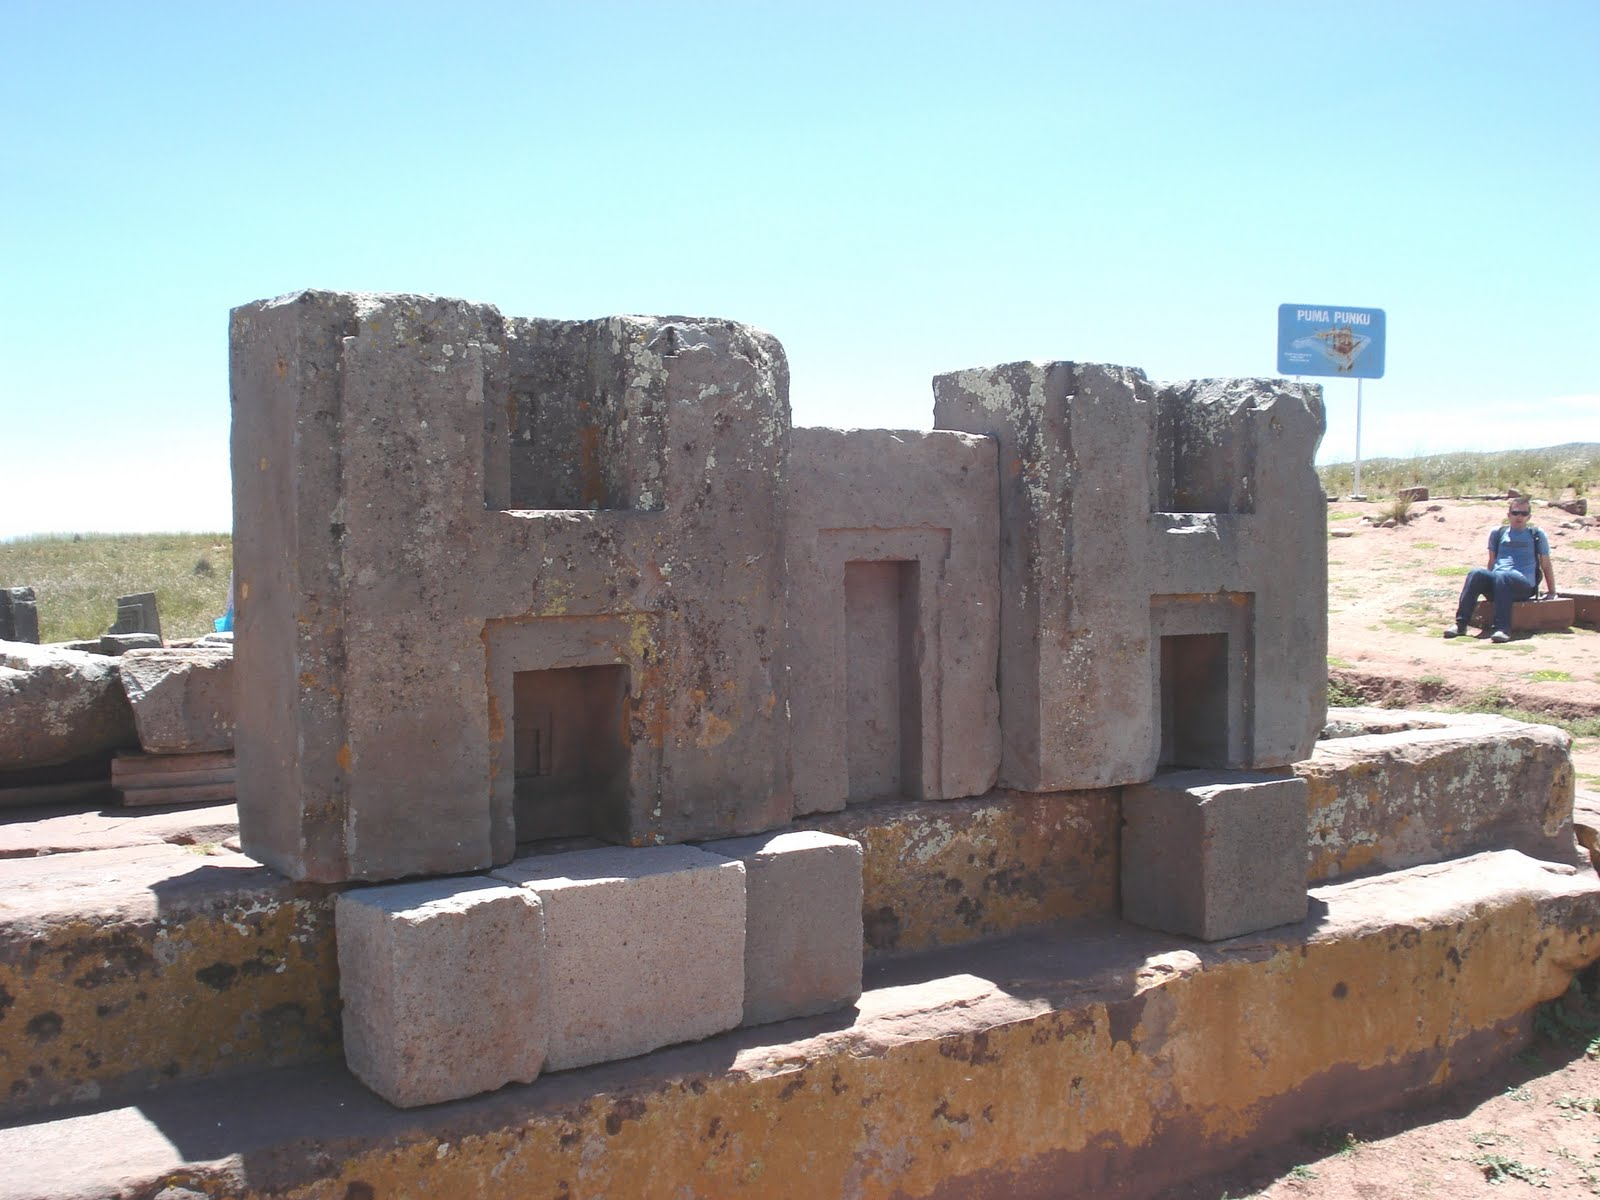 Puma Punku is an ancient archaeological site in Bolivia at